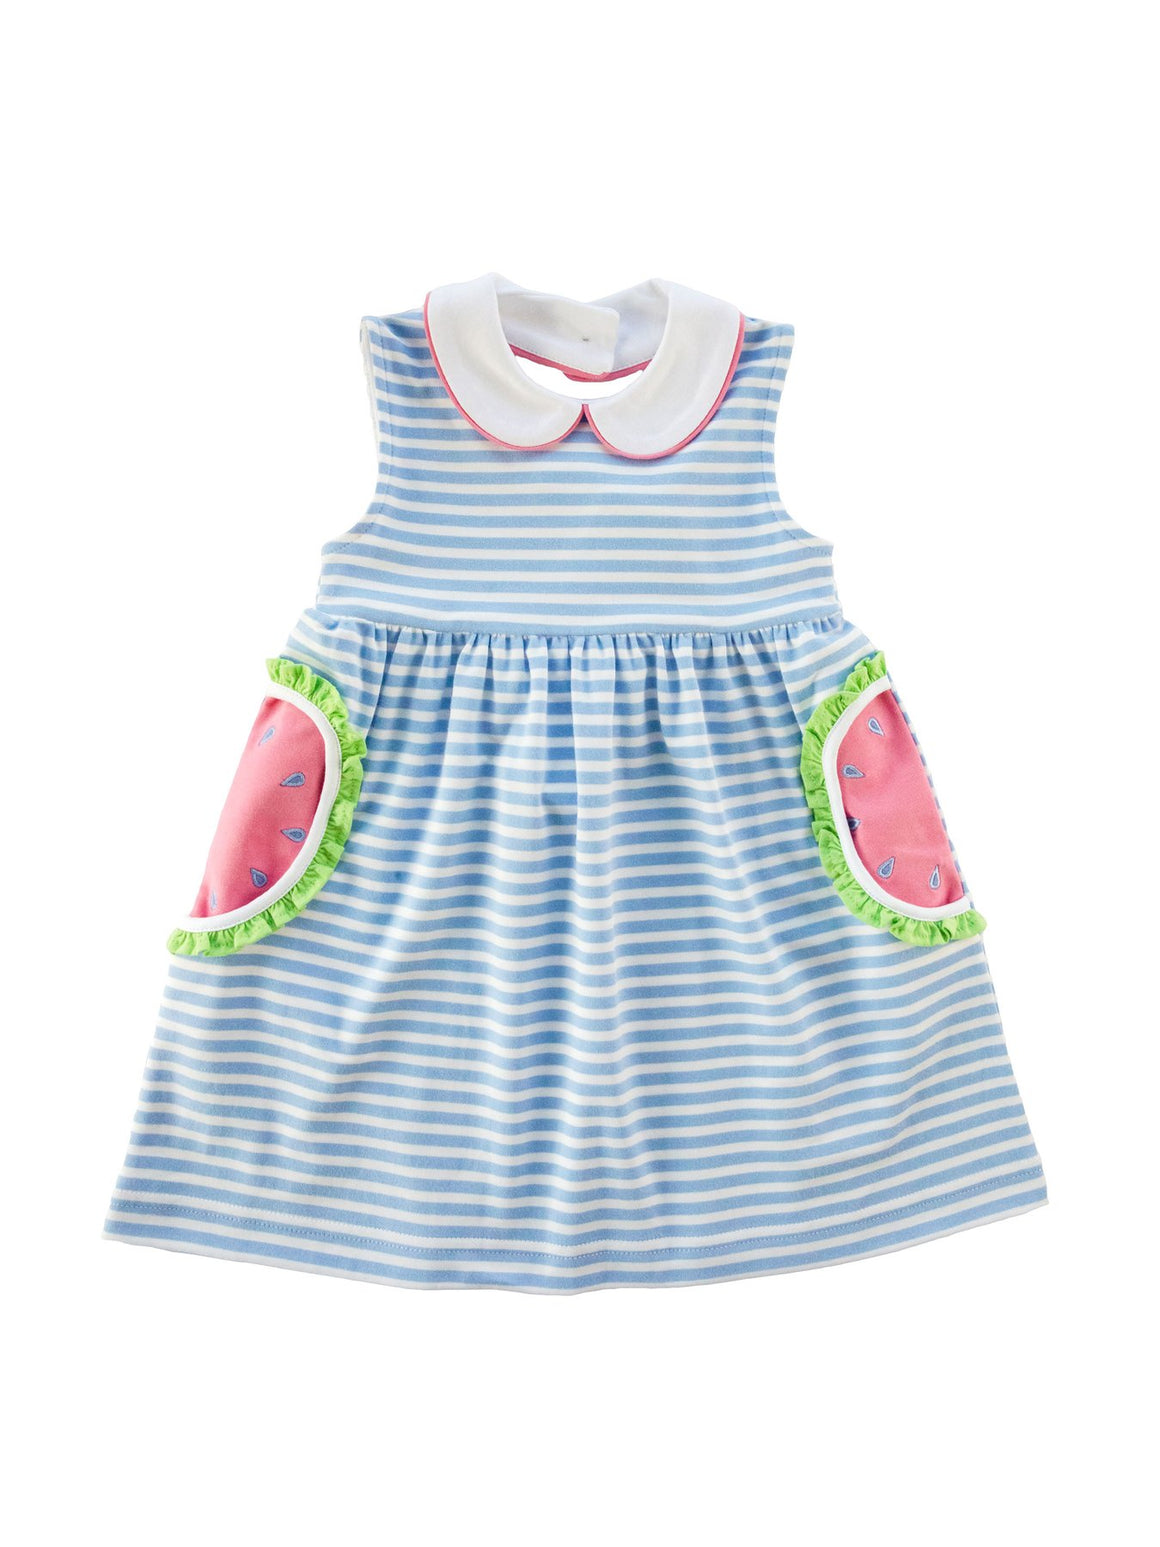 Bl & Wh Striped Dress w/ Watermelon Pockets